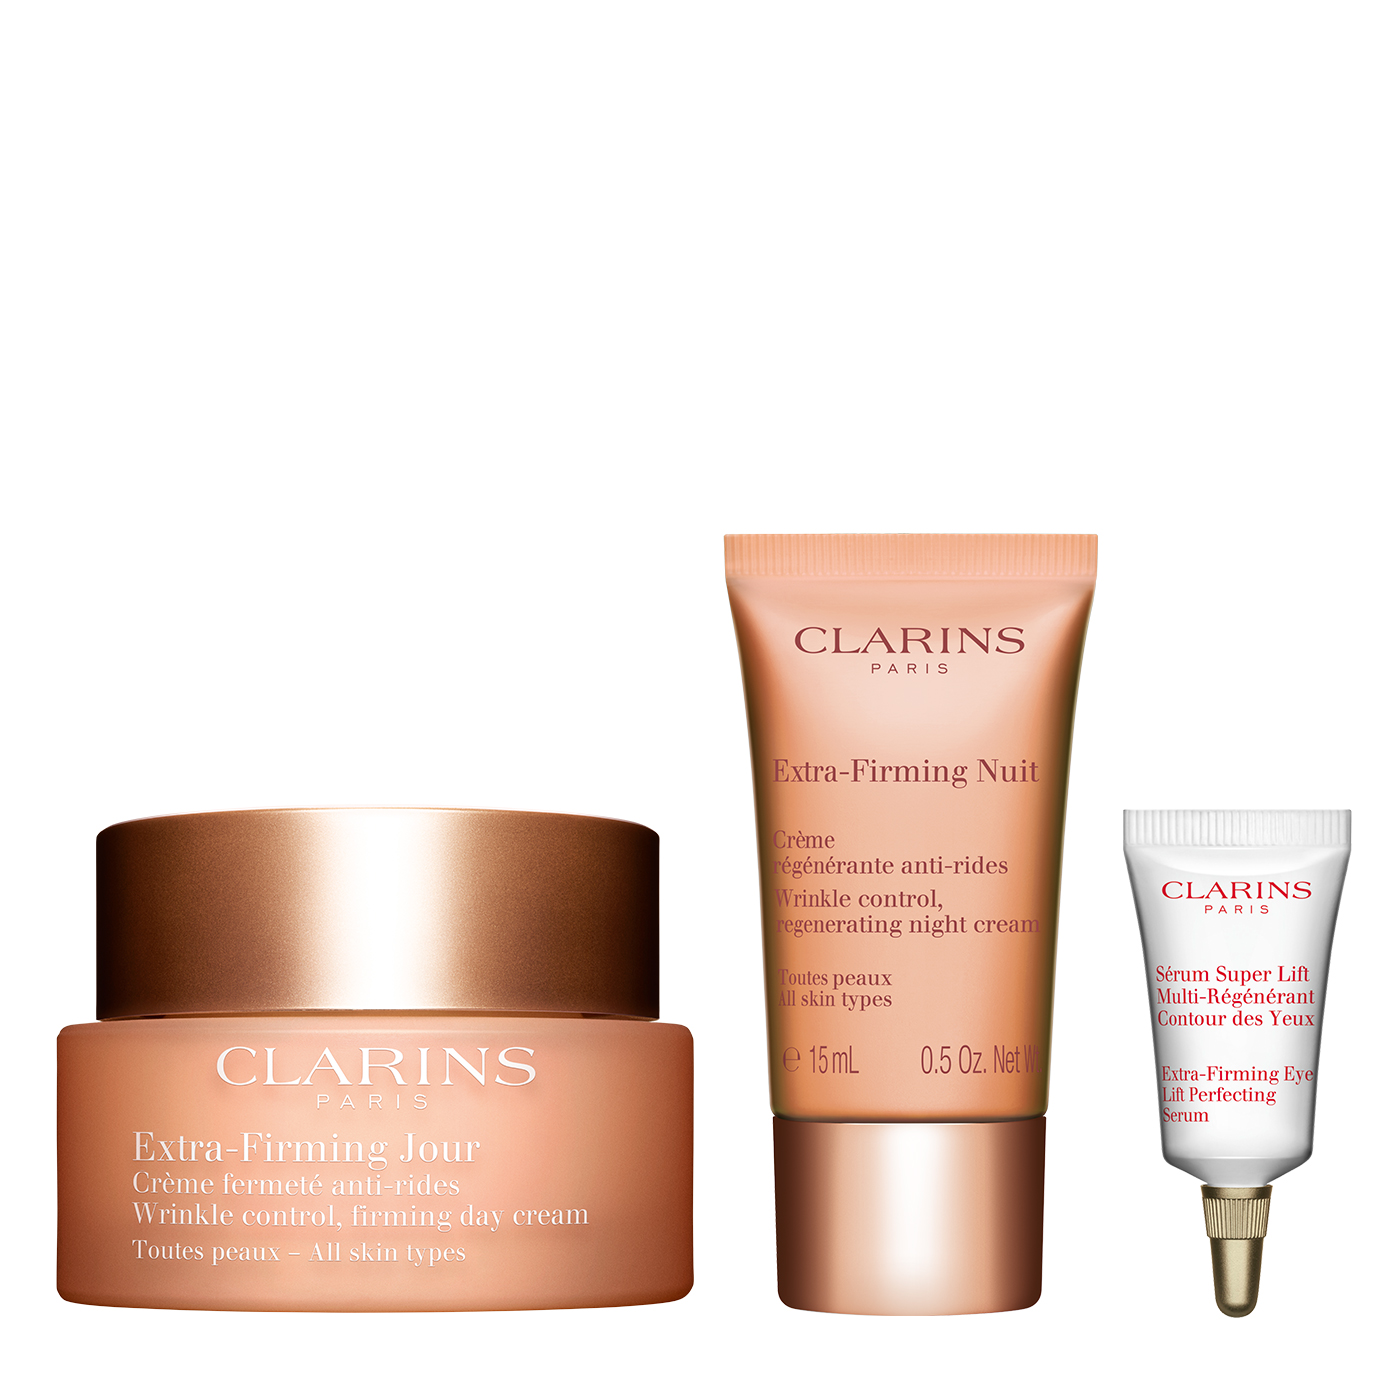 It's all about you. French beauty brand Clarins brings you the best plant-based skin care and beauty products in Malaysia. Unveil your inner beauty with our wide product lines, including facial creams, body care products and more! Get the best treatment for your face and body online, only at Clarin.